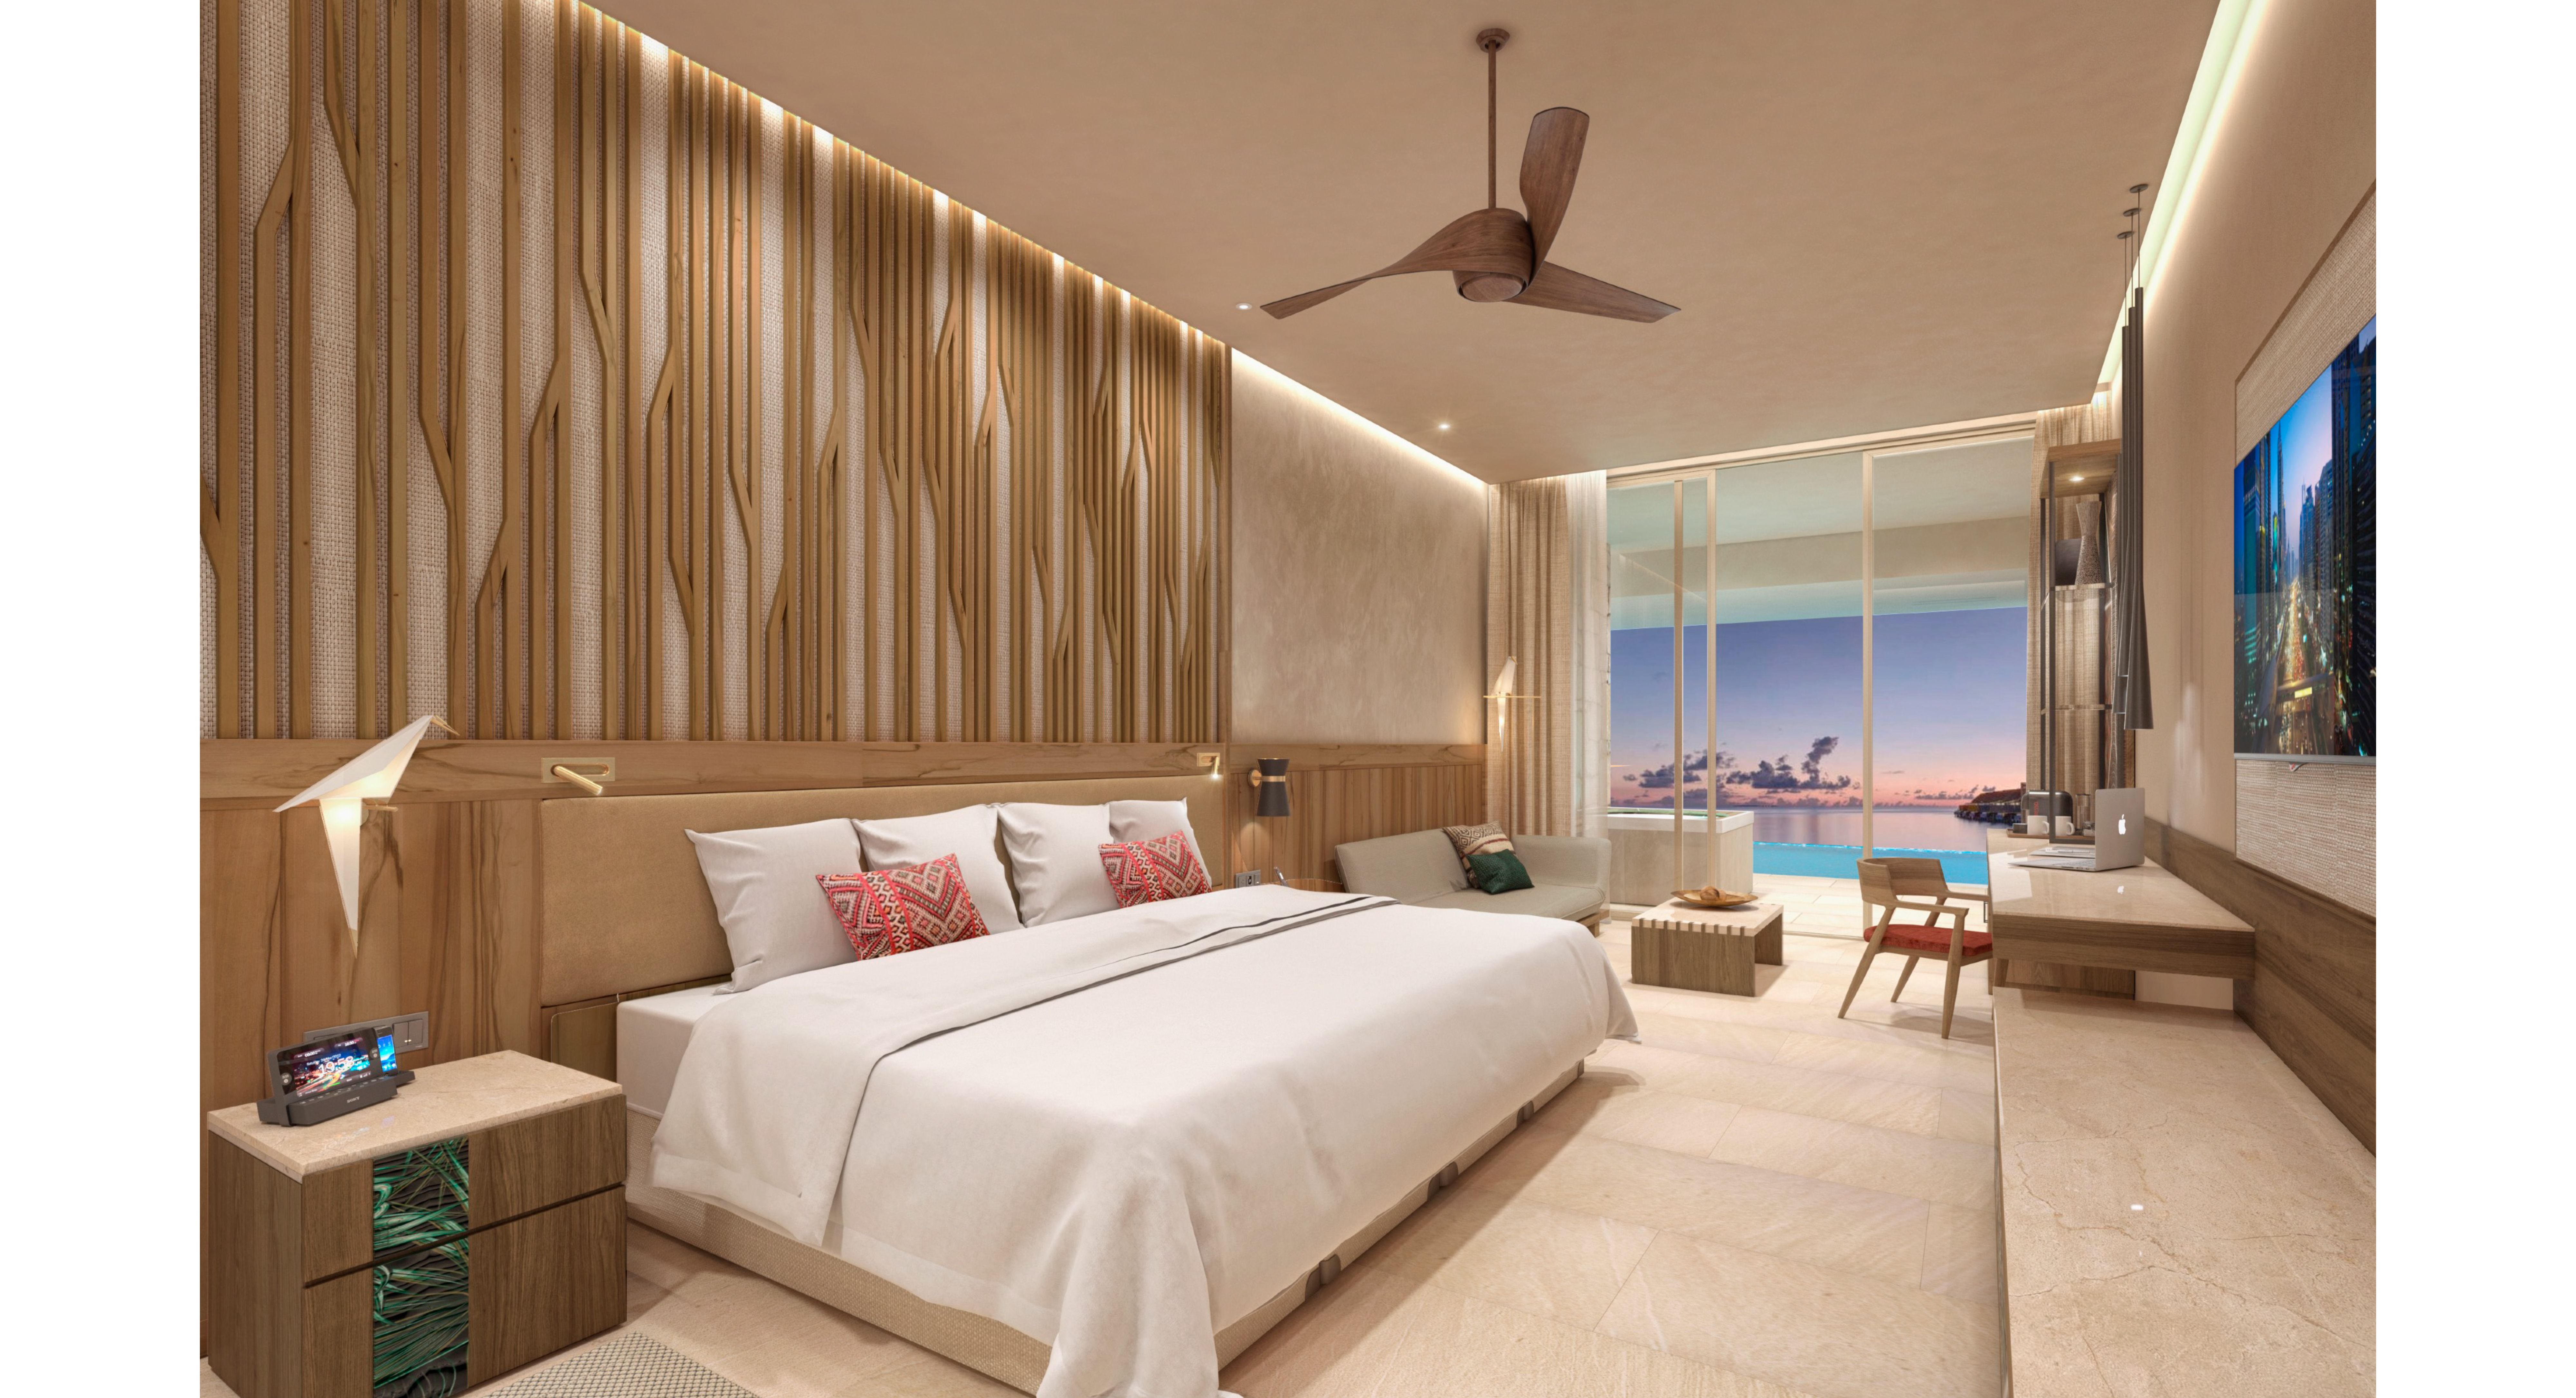 Showing slide 2 of 4 in image gallery showcasing Junior Suite Ocean Front